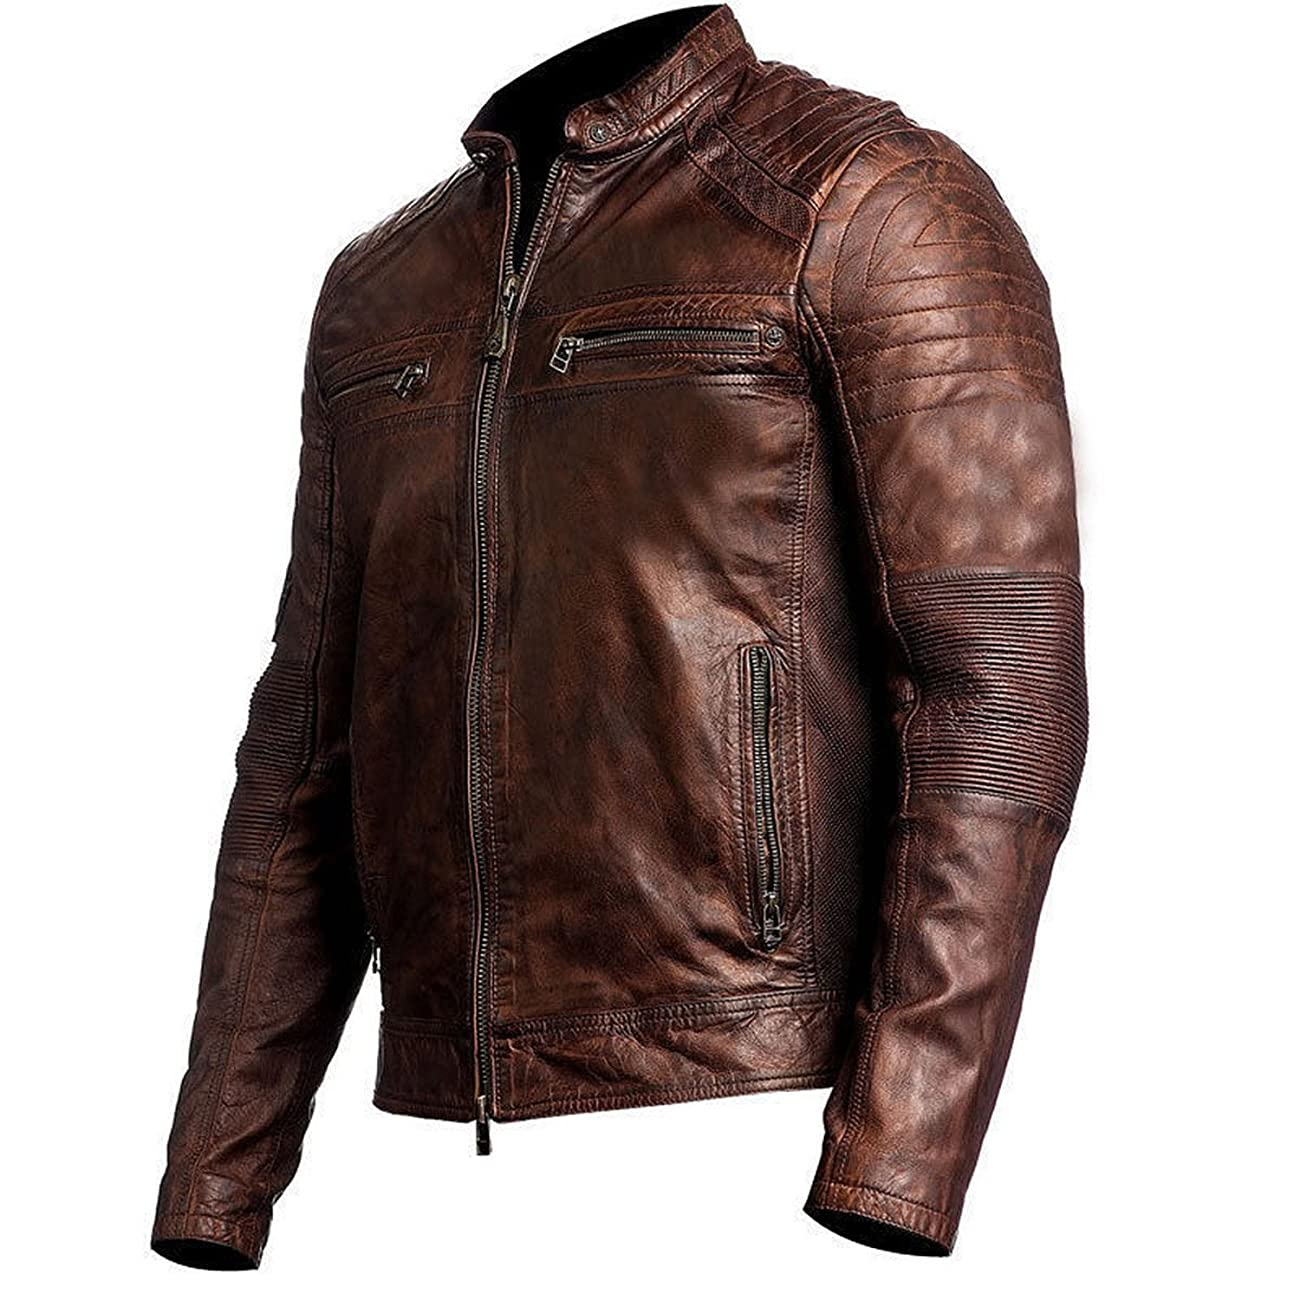 Men's Biker Vintage Motorcycle Distressed Brown Cafe Racer Leather Jacket 1